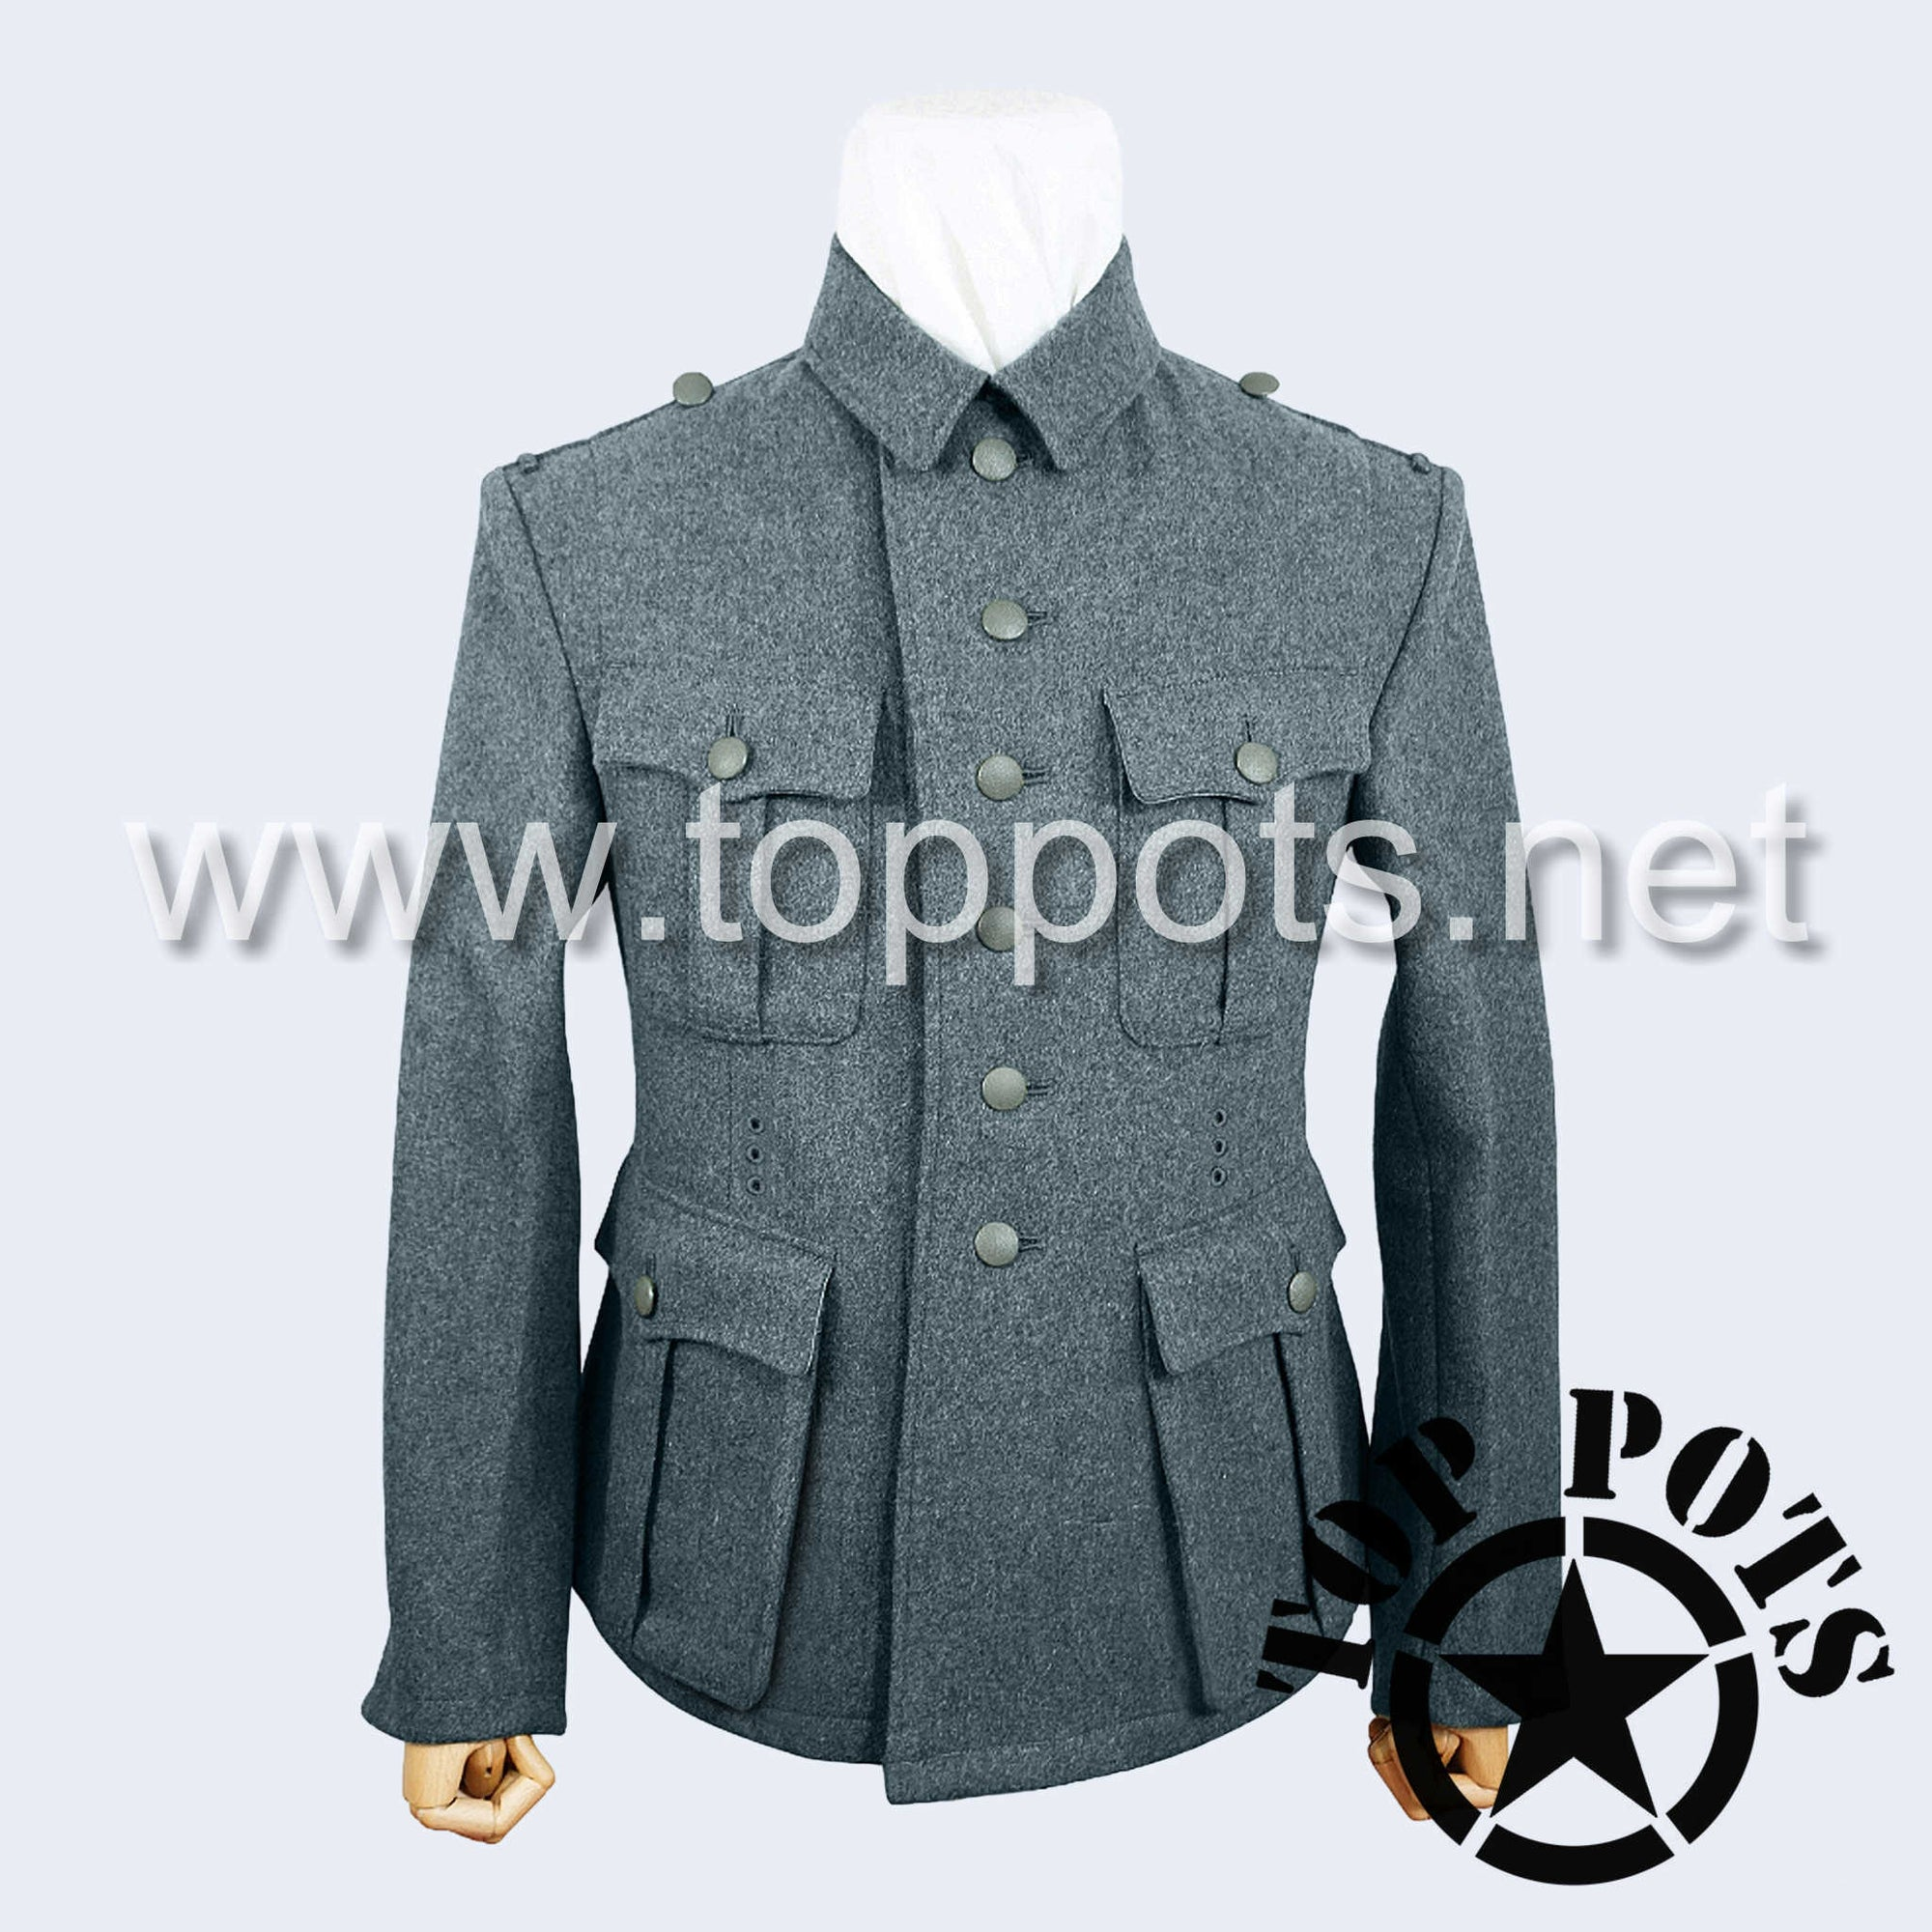 WWII German Army M1941 Waffen SS Uniform Jacket Blue-Green Grey Italian Field Wool - Enlisted Tunic